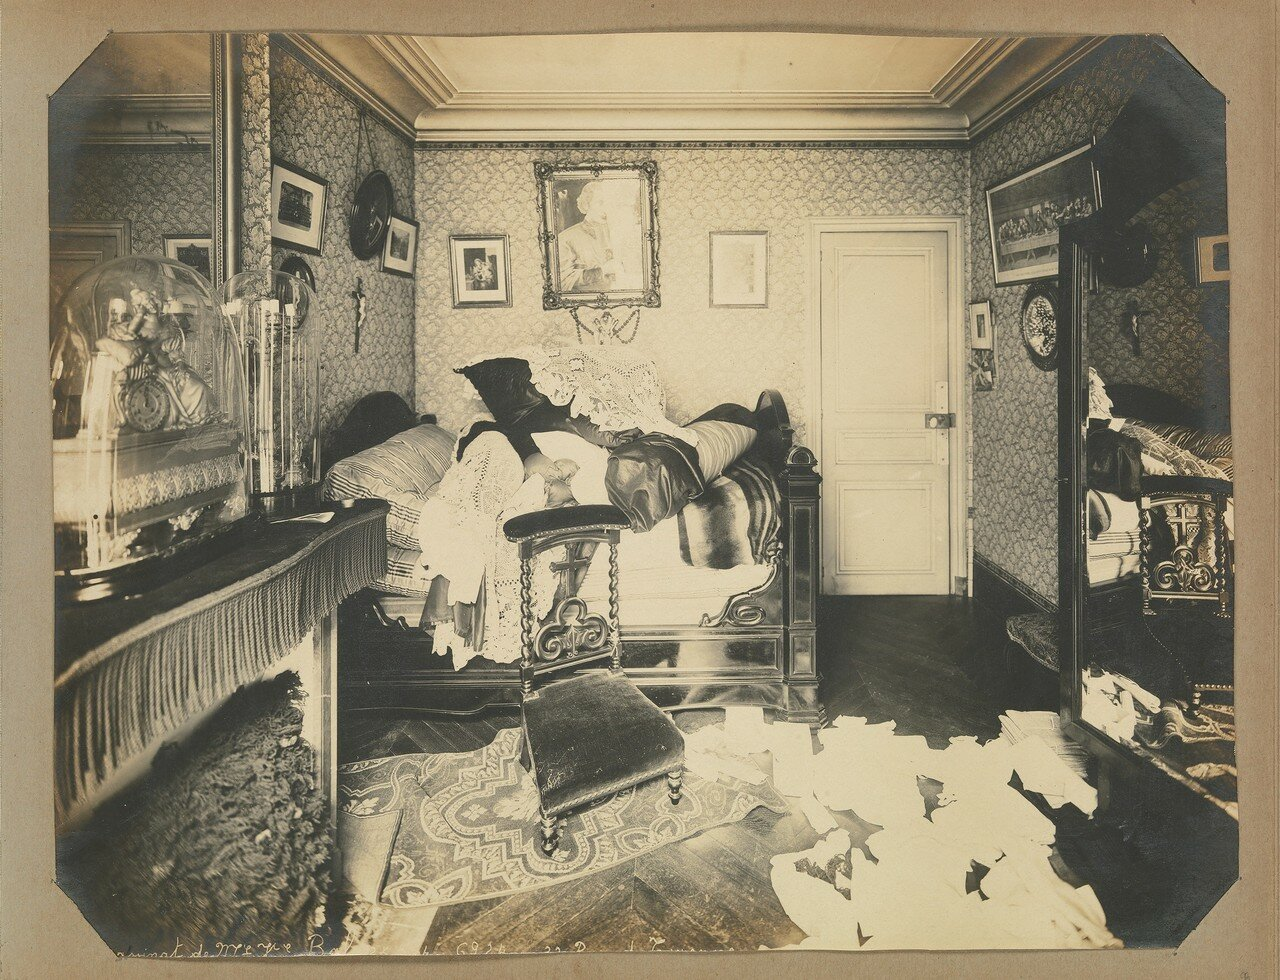 Watch The Gilded Age American Experience Official Site PBS 19th century crime scene photos